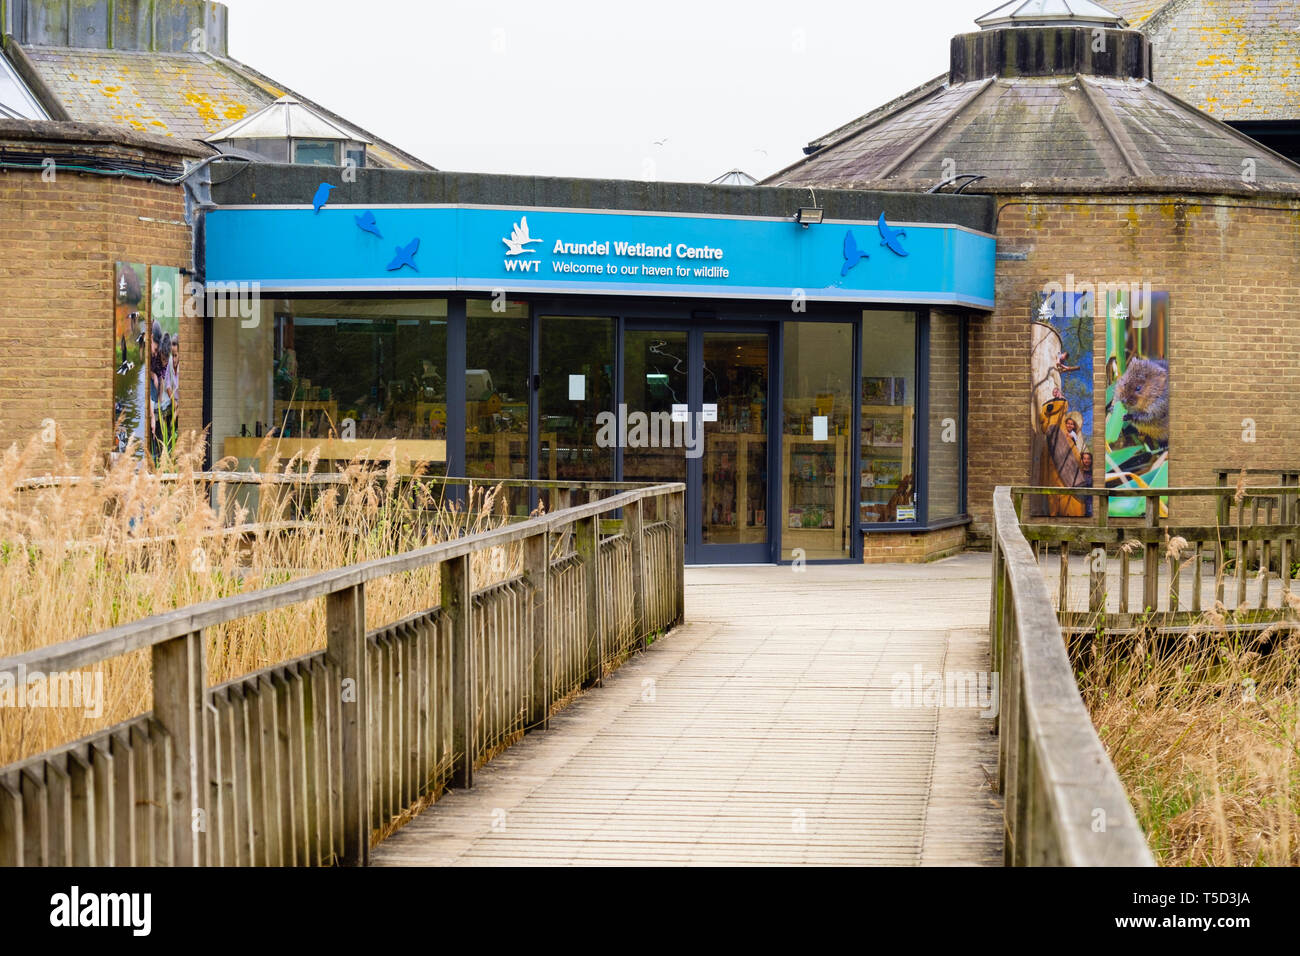 Arundel Wetland Centre building entrance to the Wildfowl and Wetlands Trust nature reserve. Arundel, West Sussex, England, UK, Britain Stock Photo